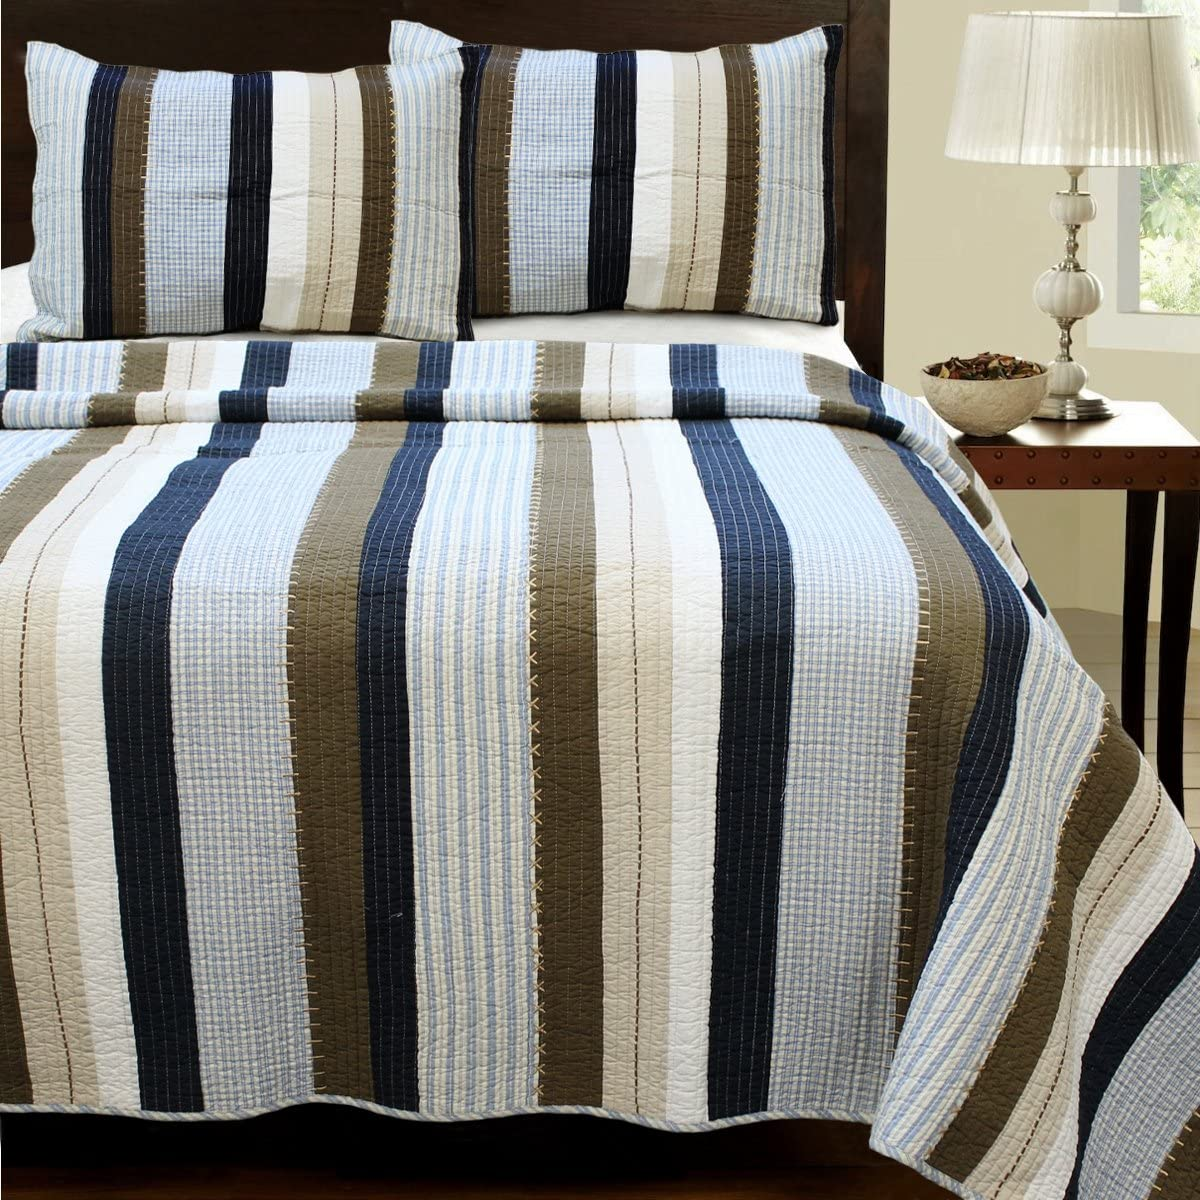 Cozy Line Home Fashions Nathan Quilt Navy Bedding unisex Whit Set Overseas parallel import regular item Blue